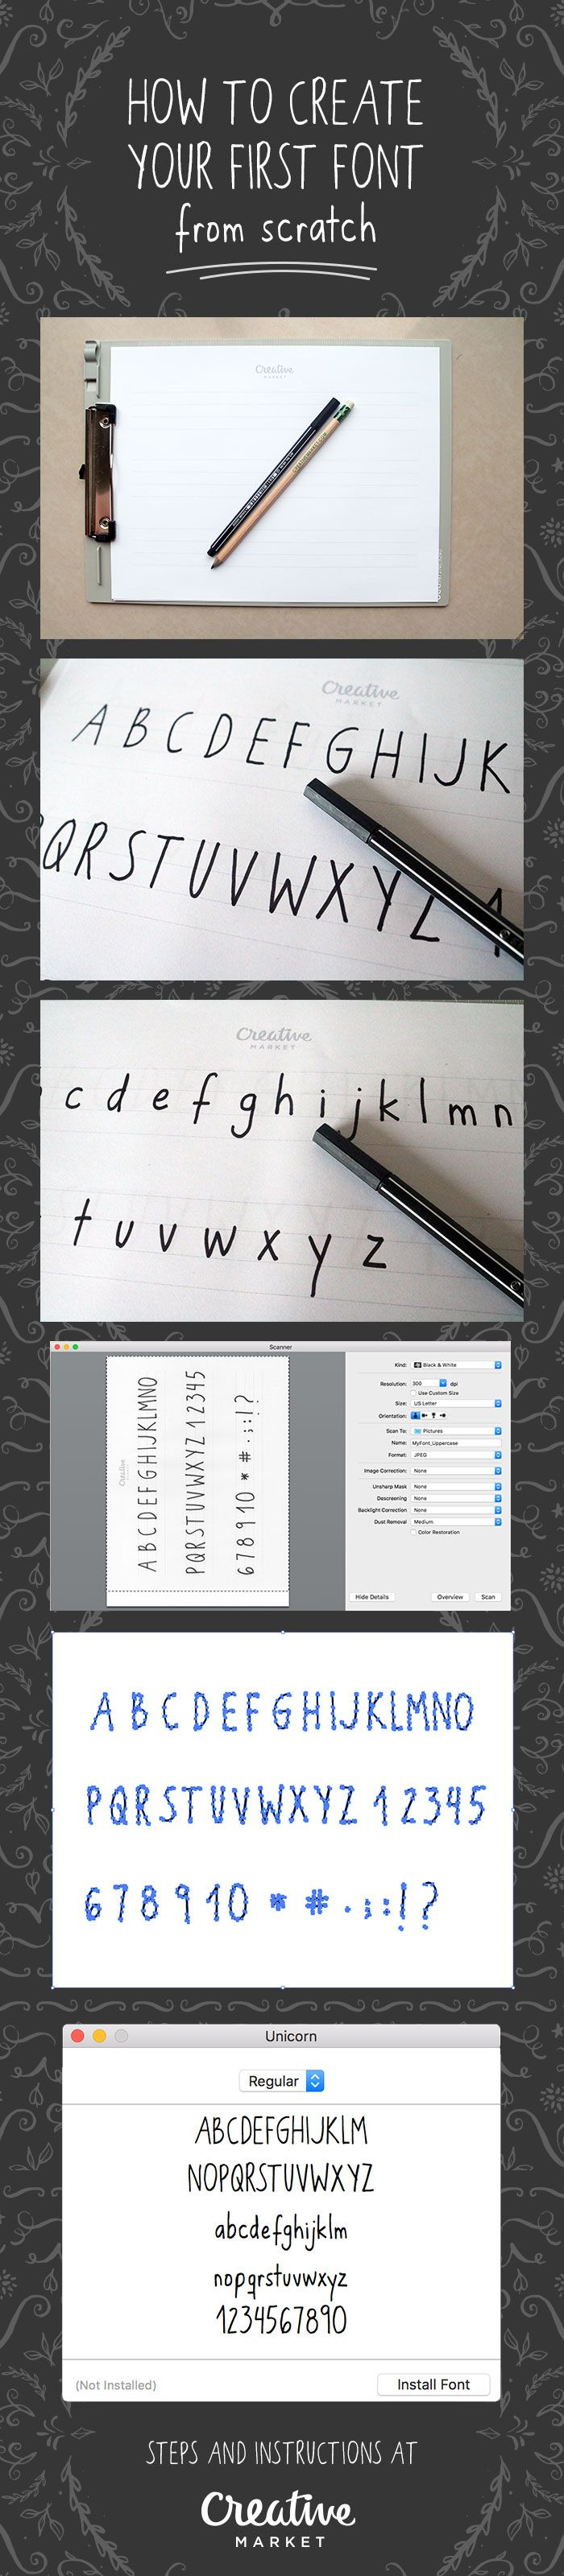 How to Create Your First Font from Scratch: A Step by Step Guide